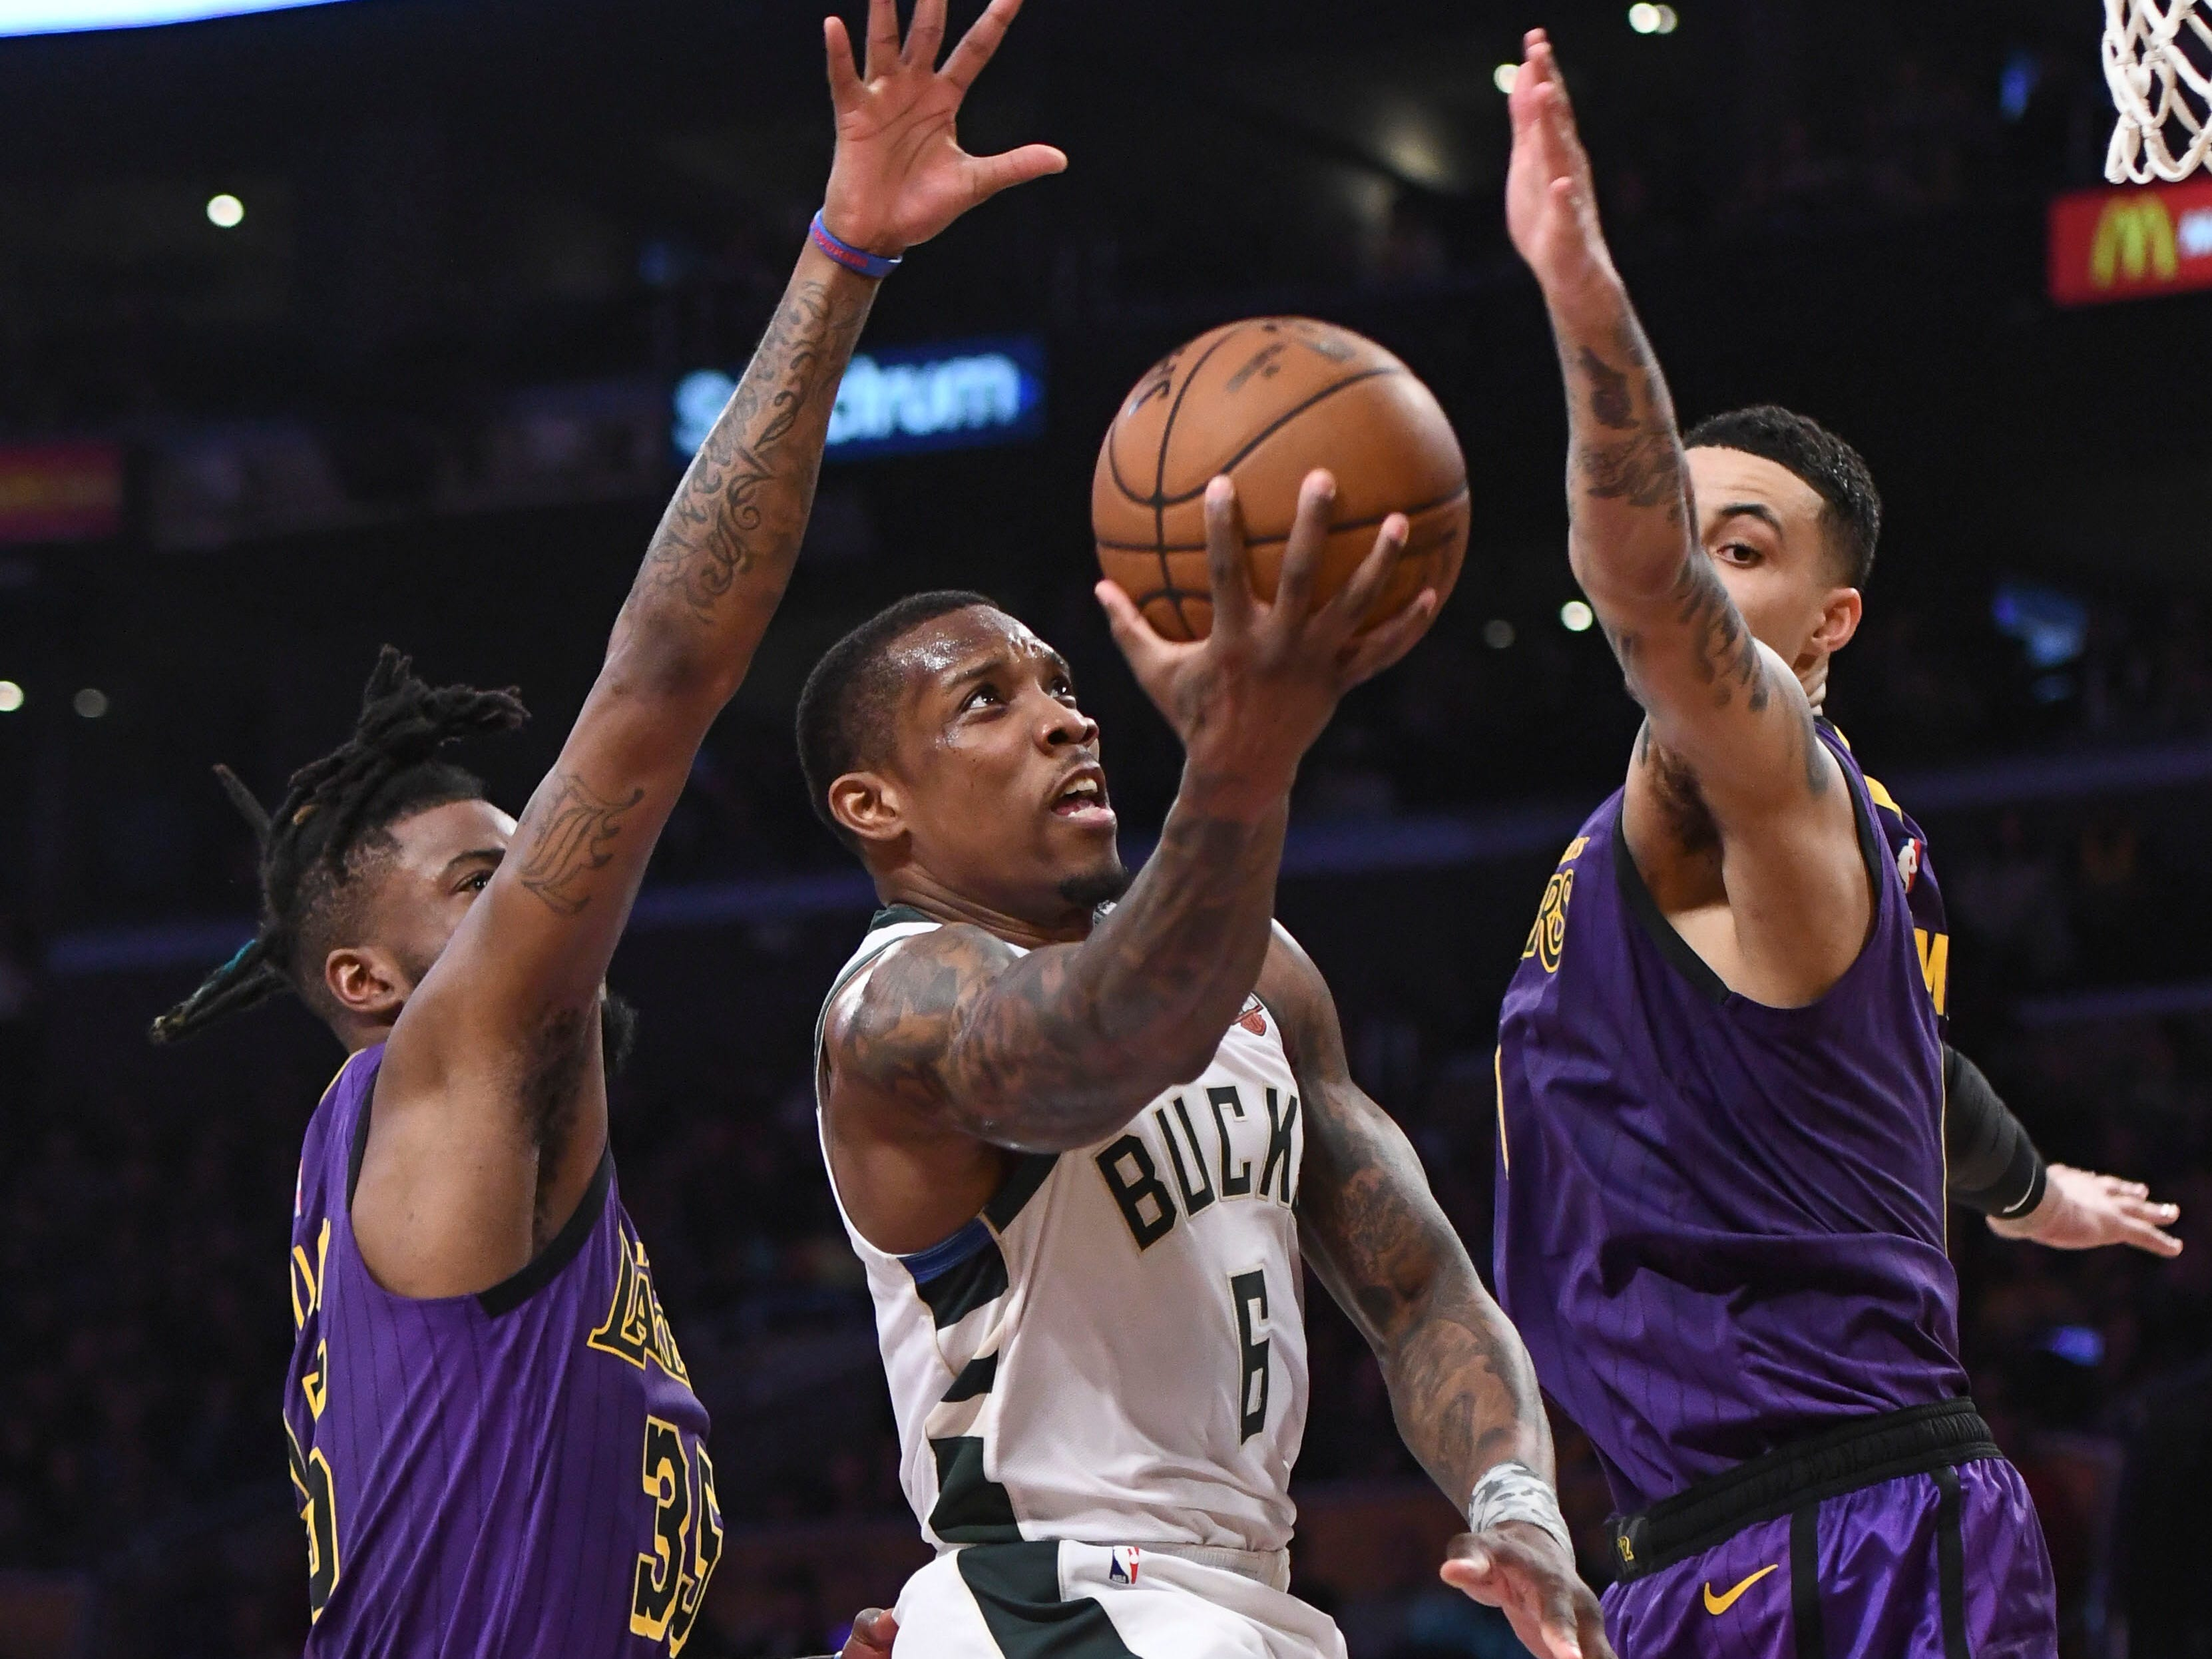 Bucks guard Eric Bledsoe slices between Reggie Bullock (left) and Kyle Kuzma of the Lakers for a basket during the second half.